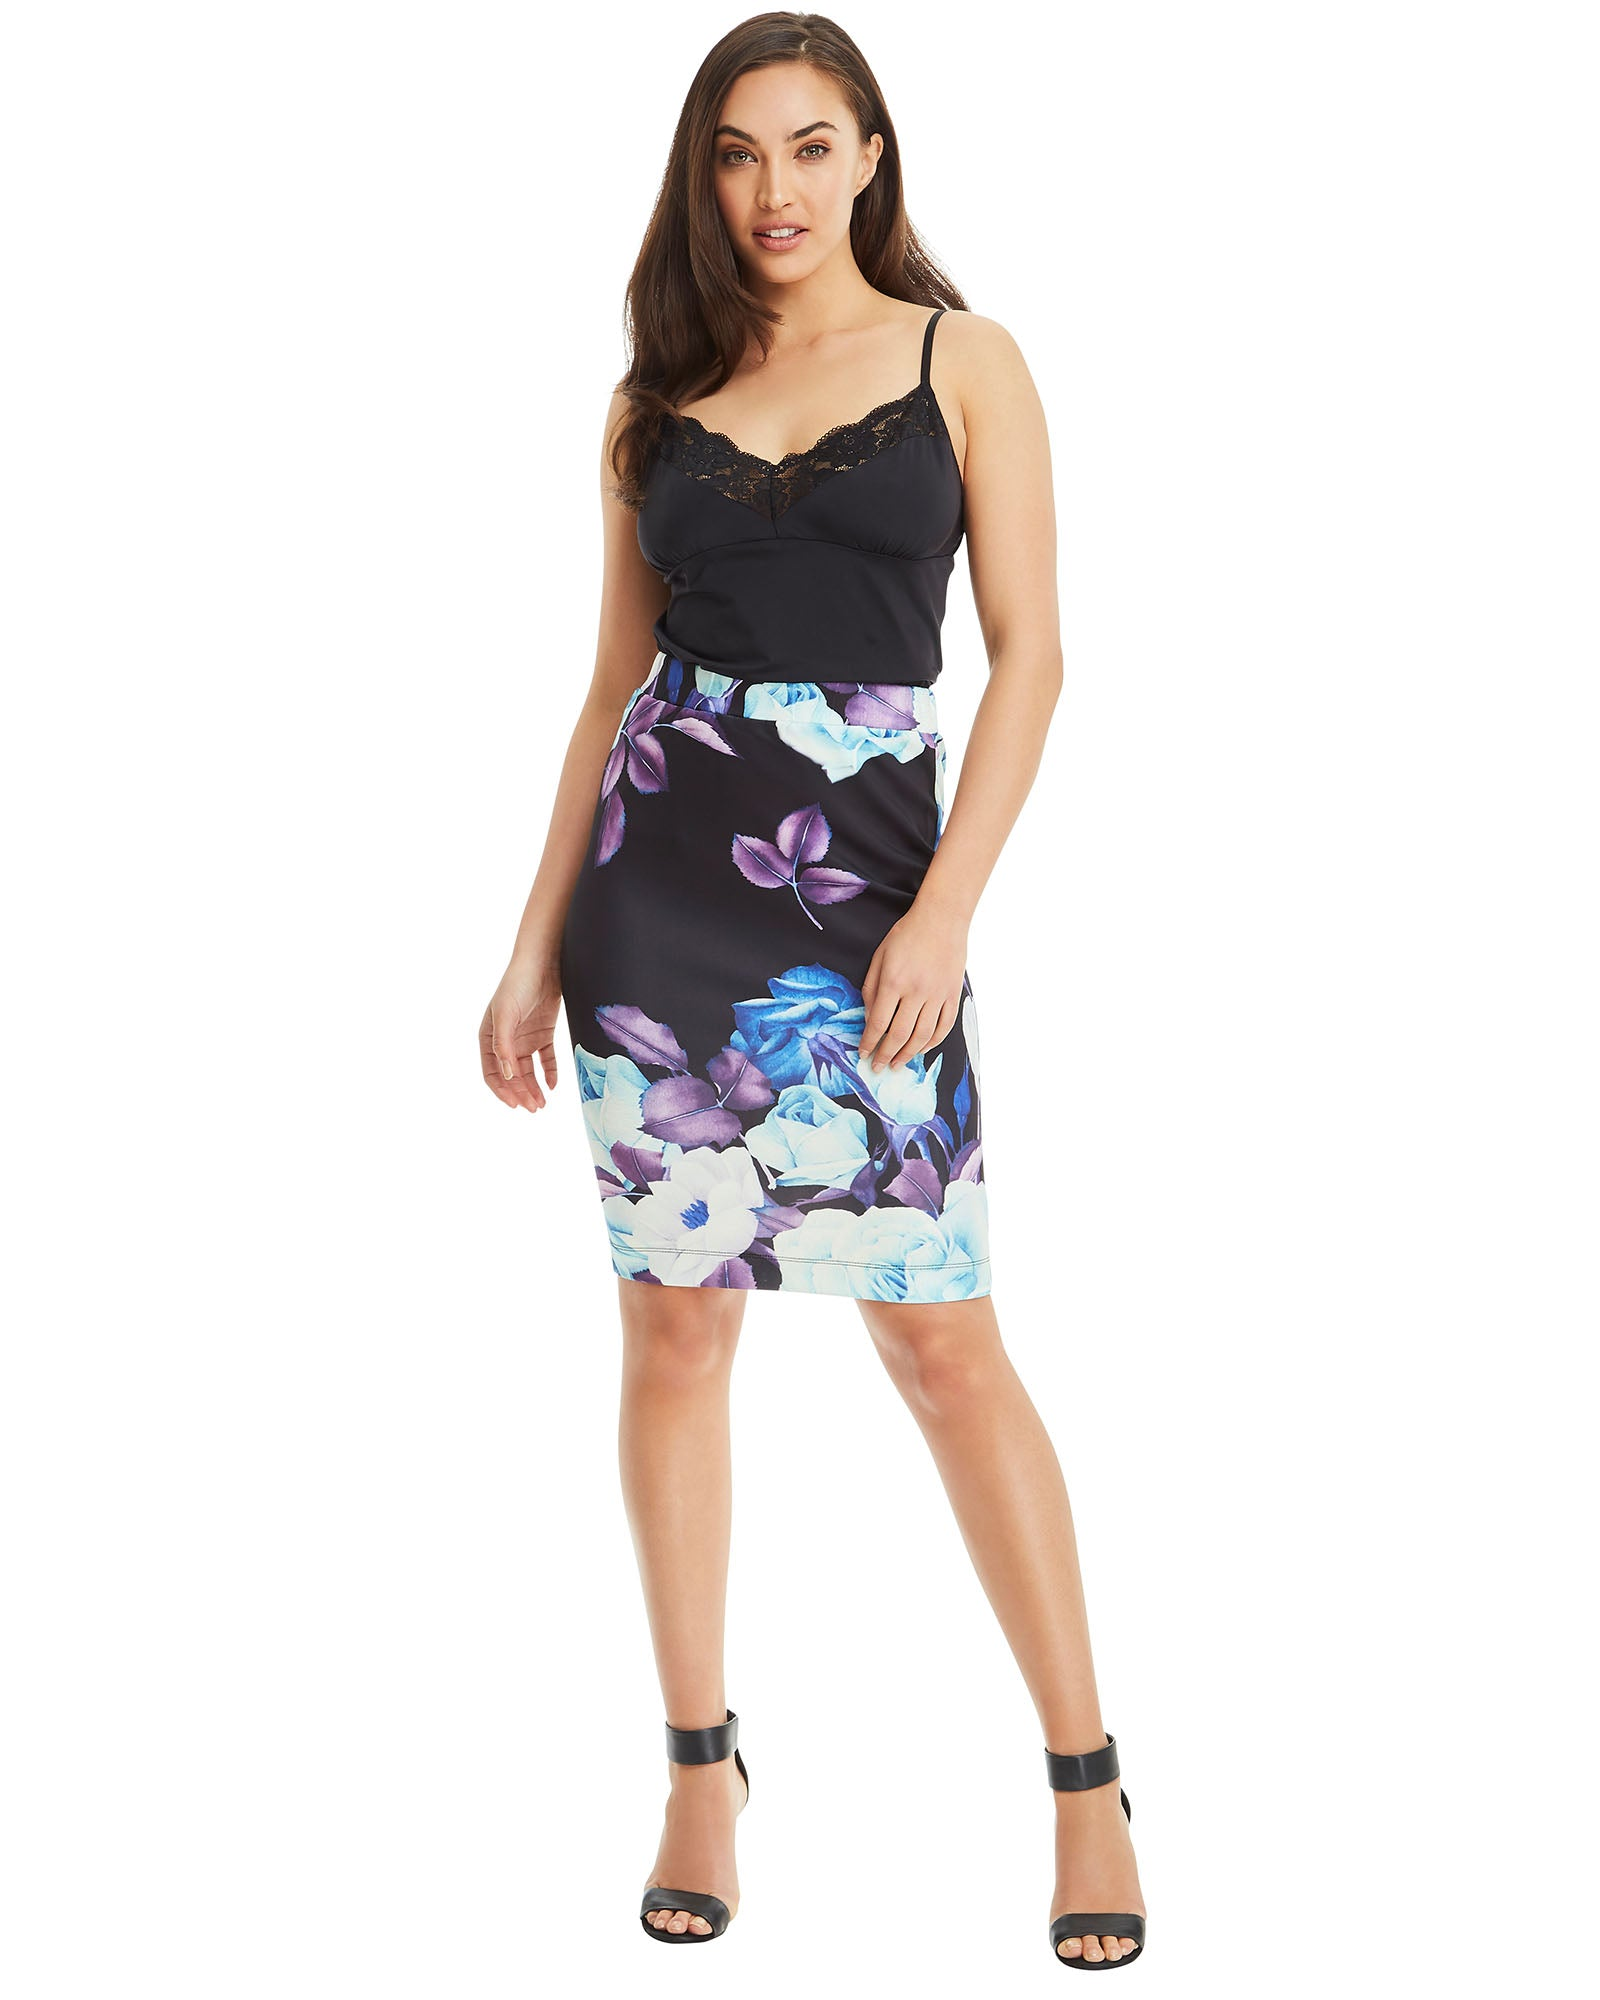 SKIVA pencil floral print skirt stretch fabric zipper fully lined elastane band slit work party cocktail body hugging